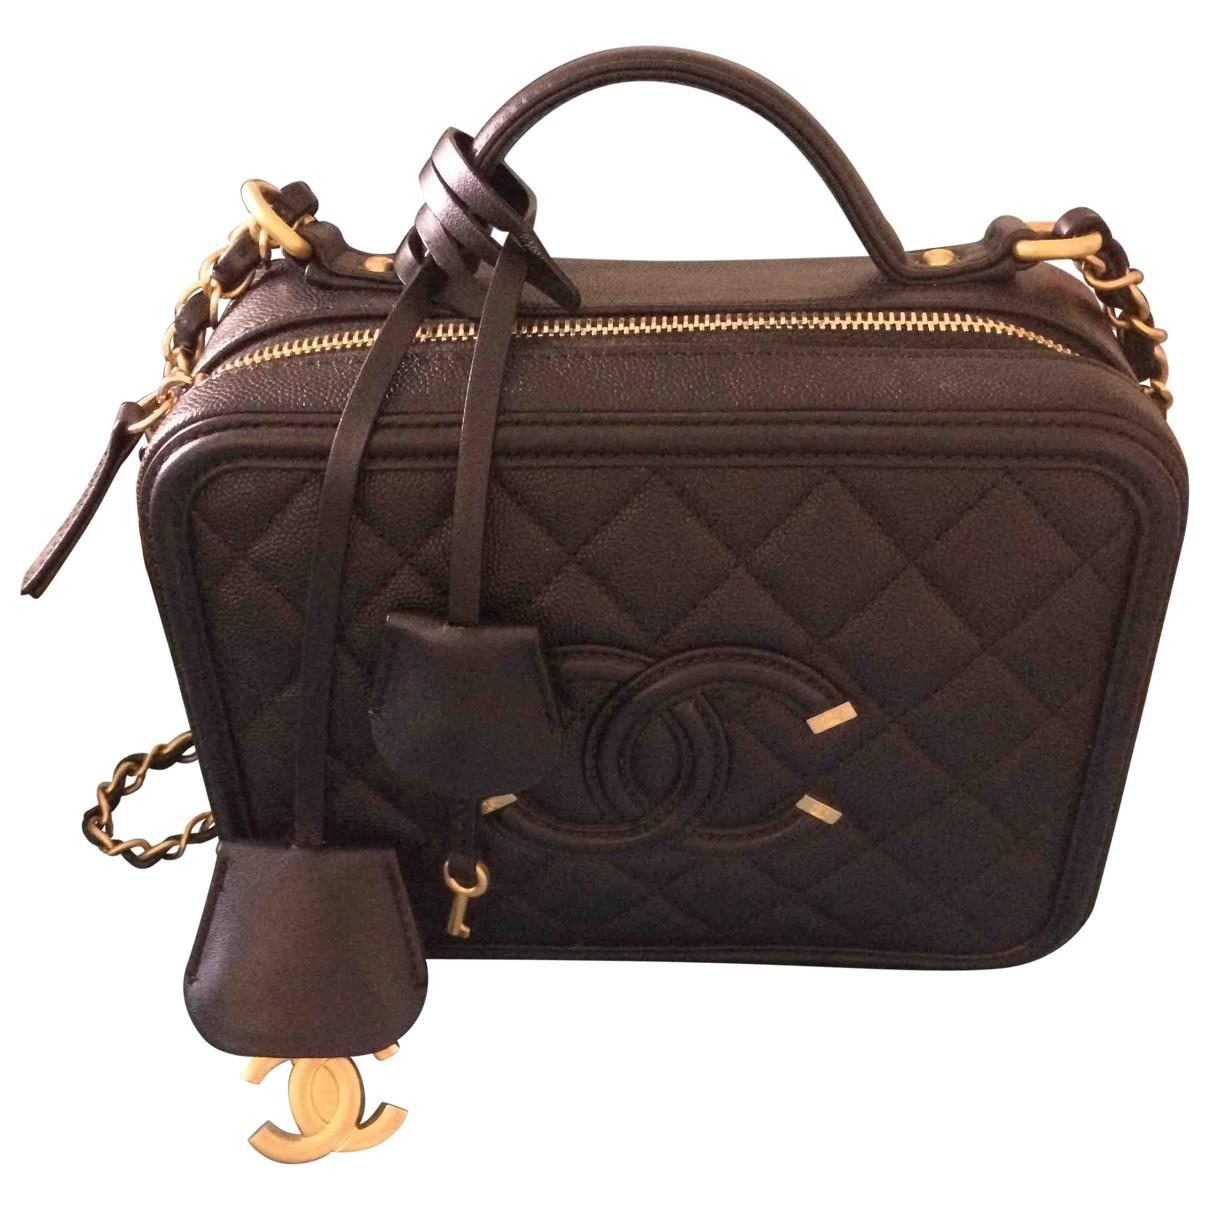 2319efc951c3 Lyst - Chanel Vanity Leather Crossbody Bag in Black